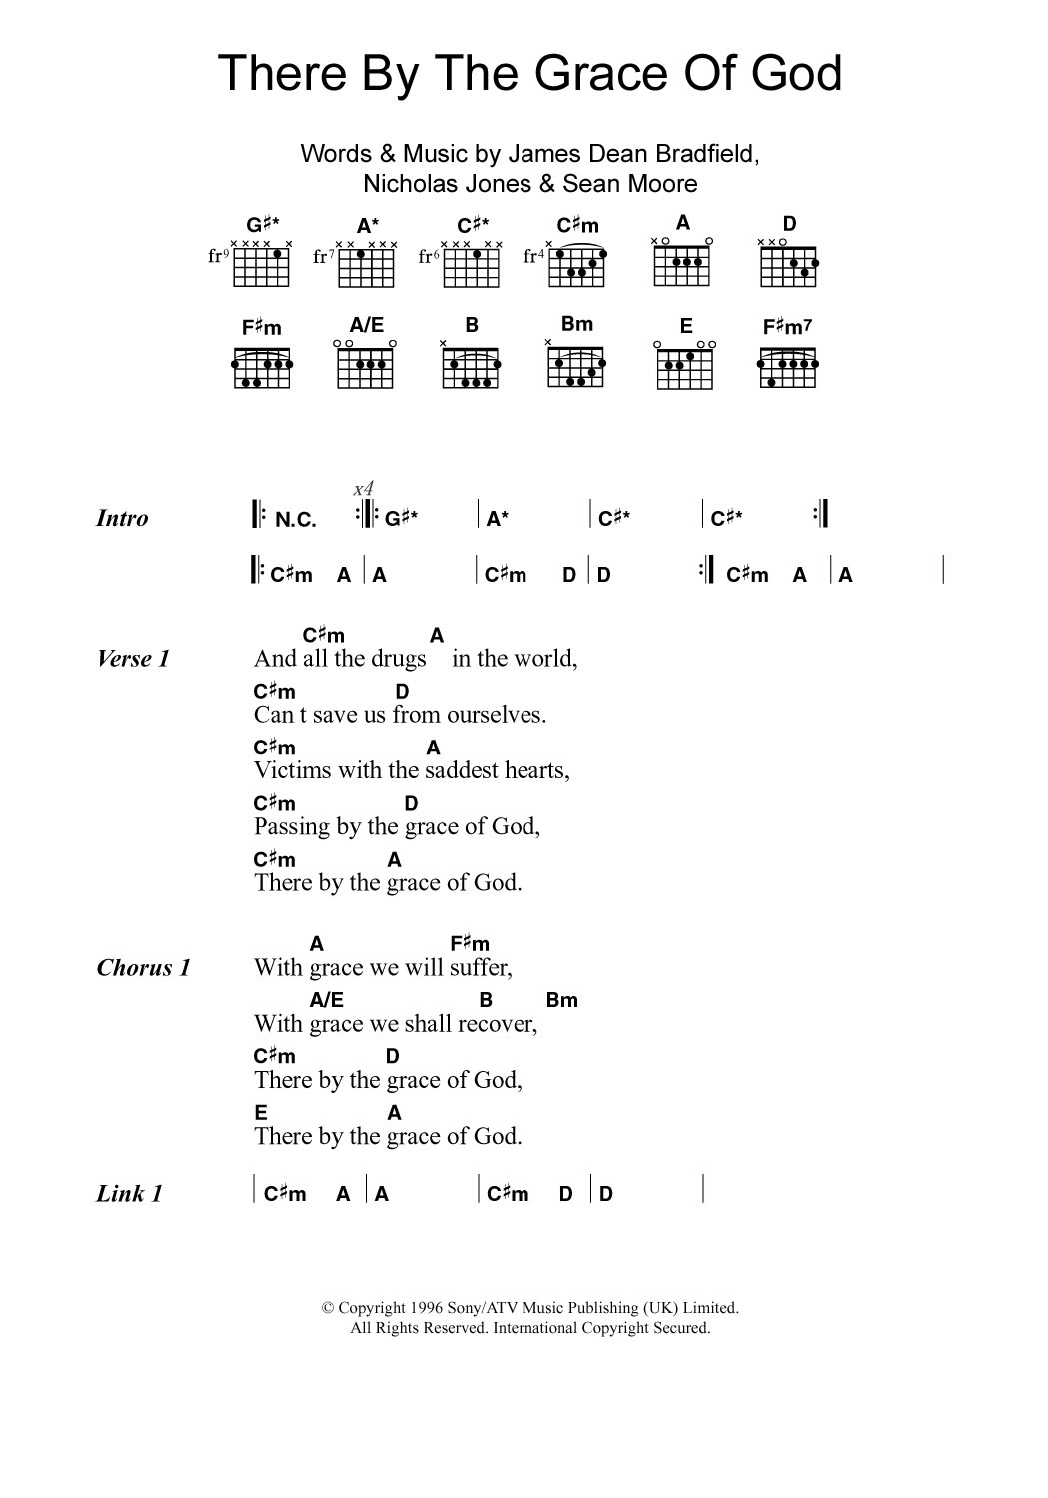 There By The Grace Of God By Manic Street Preachers Guitar Chords